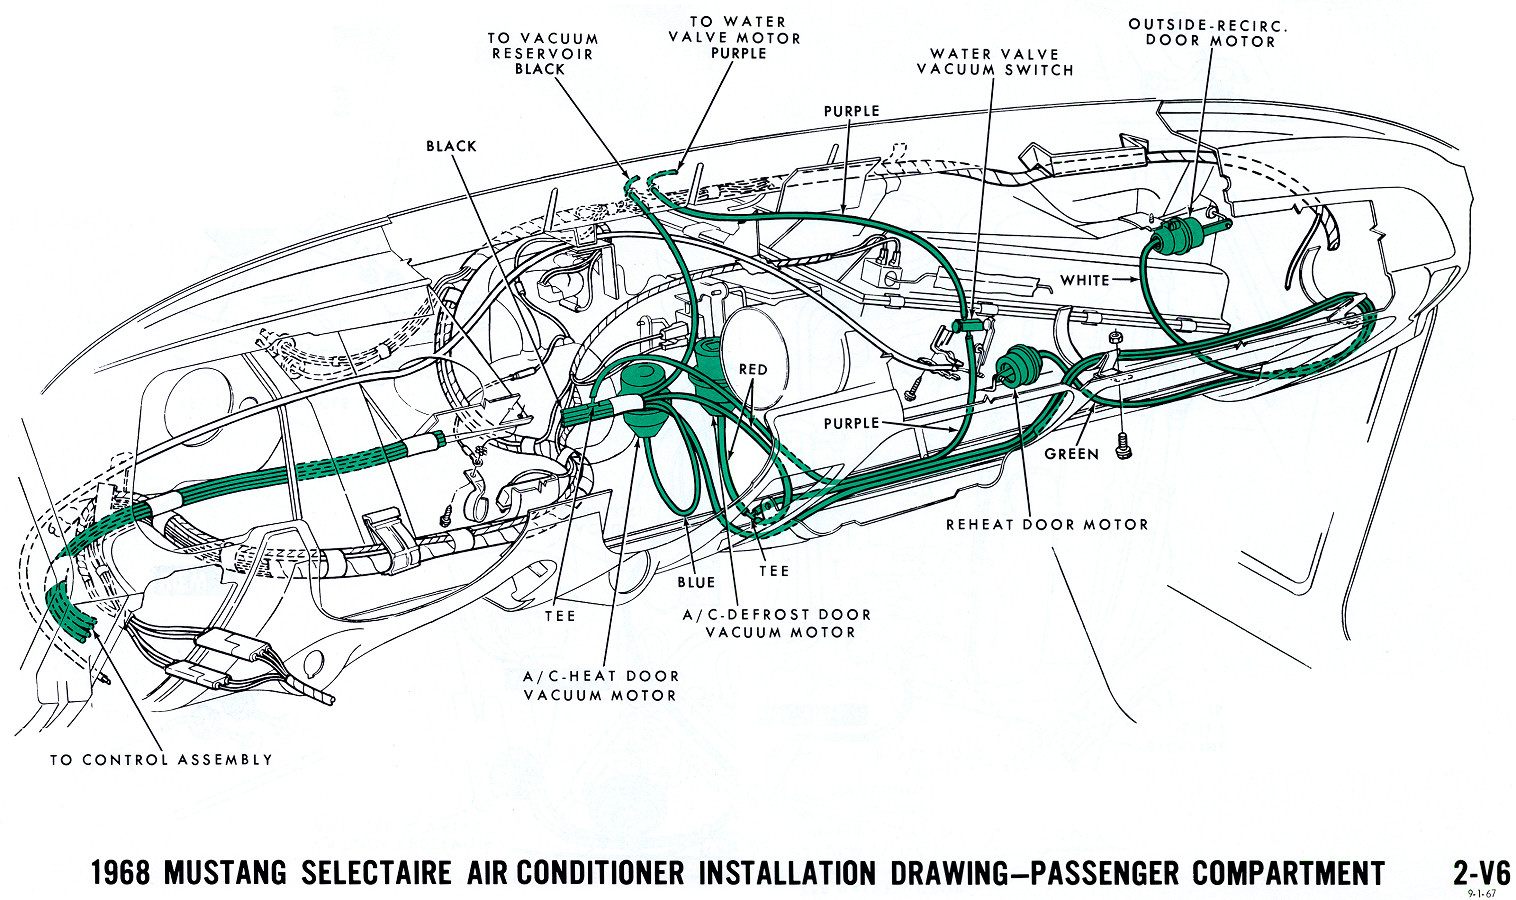 1968 mustang vacuum diagram air conditioning interior 1968 mustang wiring diagrams and vacuum schematics average joe 2002 Mustang Radio Wiring Diagram at arjmand.co